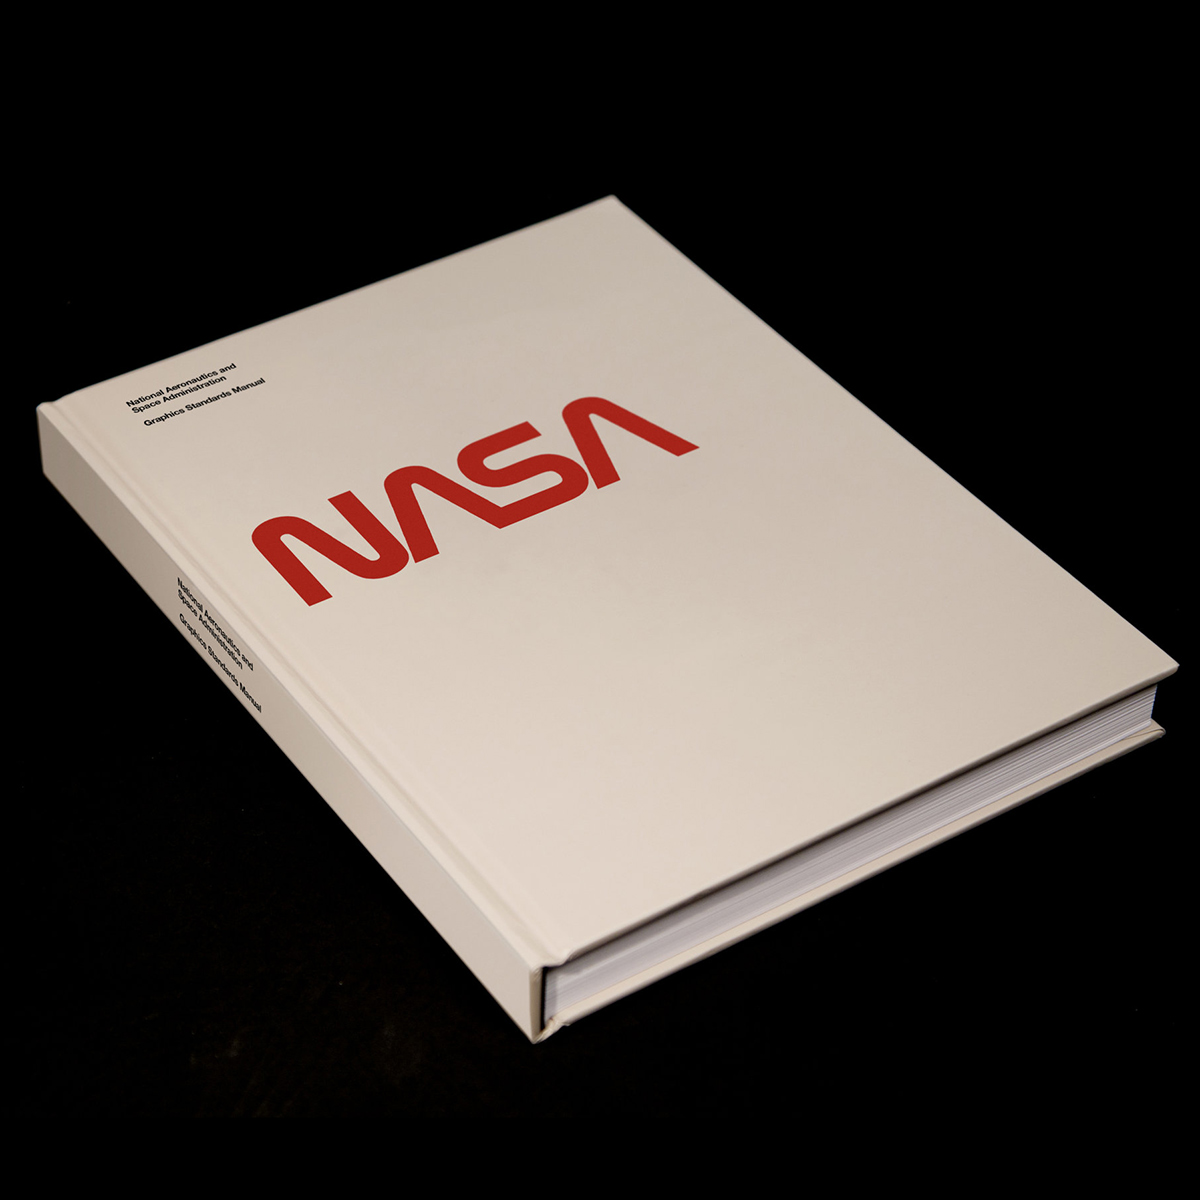 NASA Graphics Standards Manual, Reissued – COOL HUNTING®